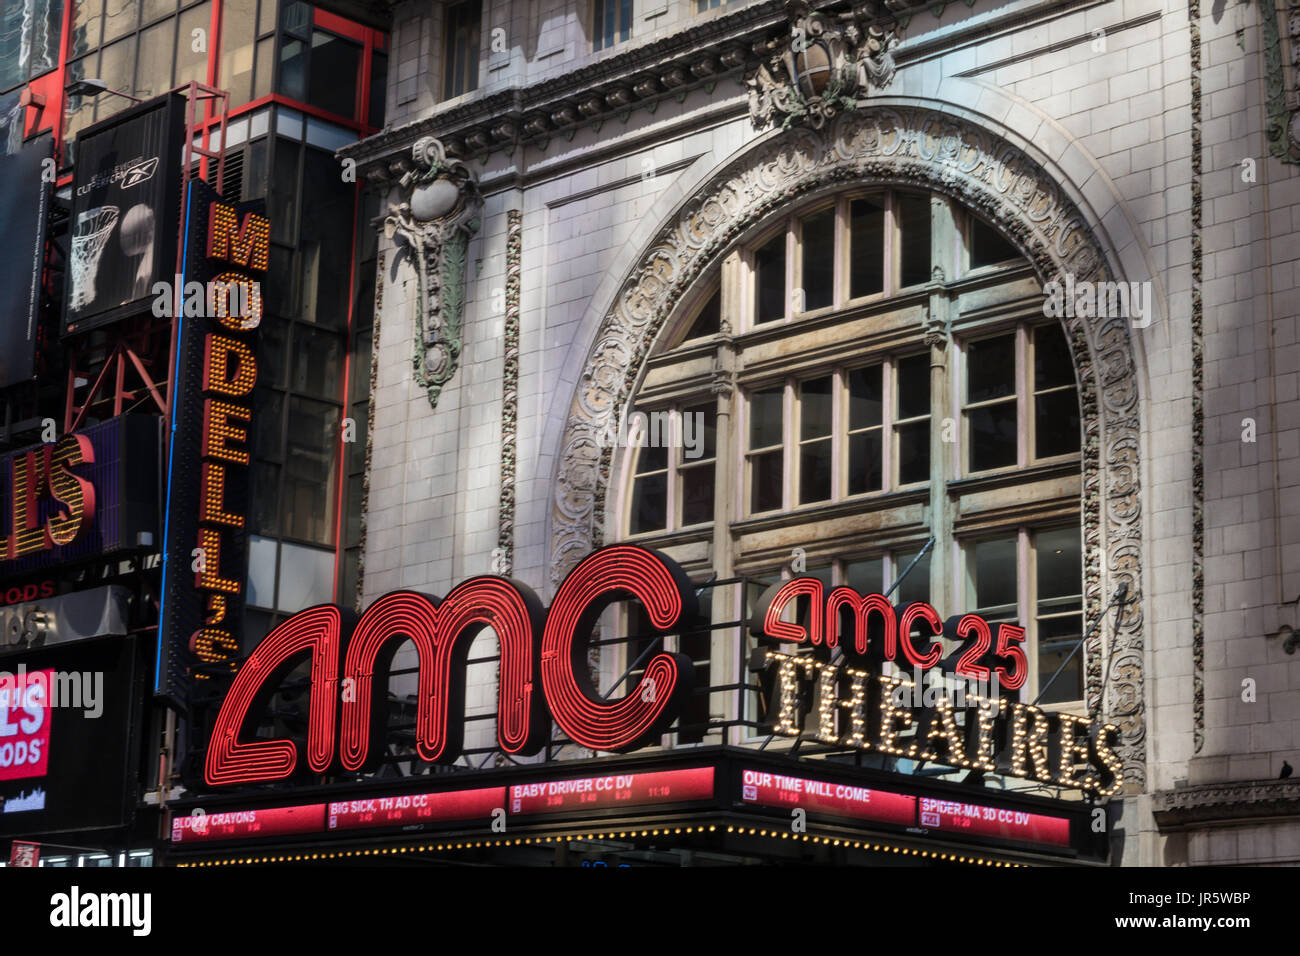 AMC Empire 25 Movie Theater in Times Square, NYC, USA - Stock Image